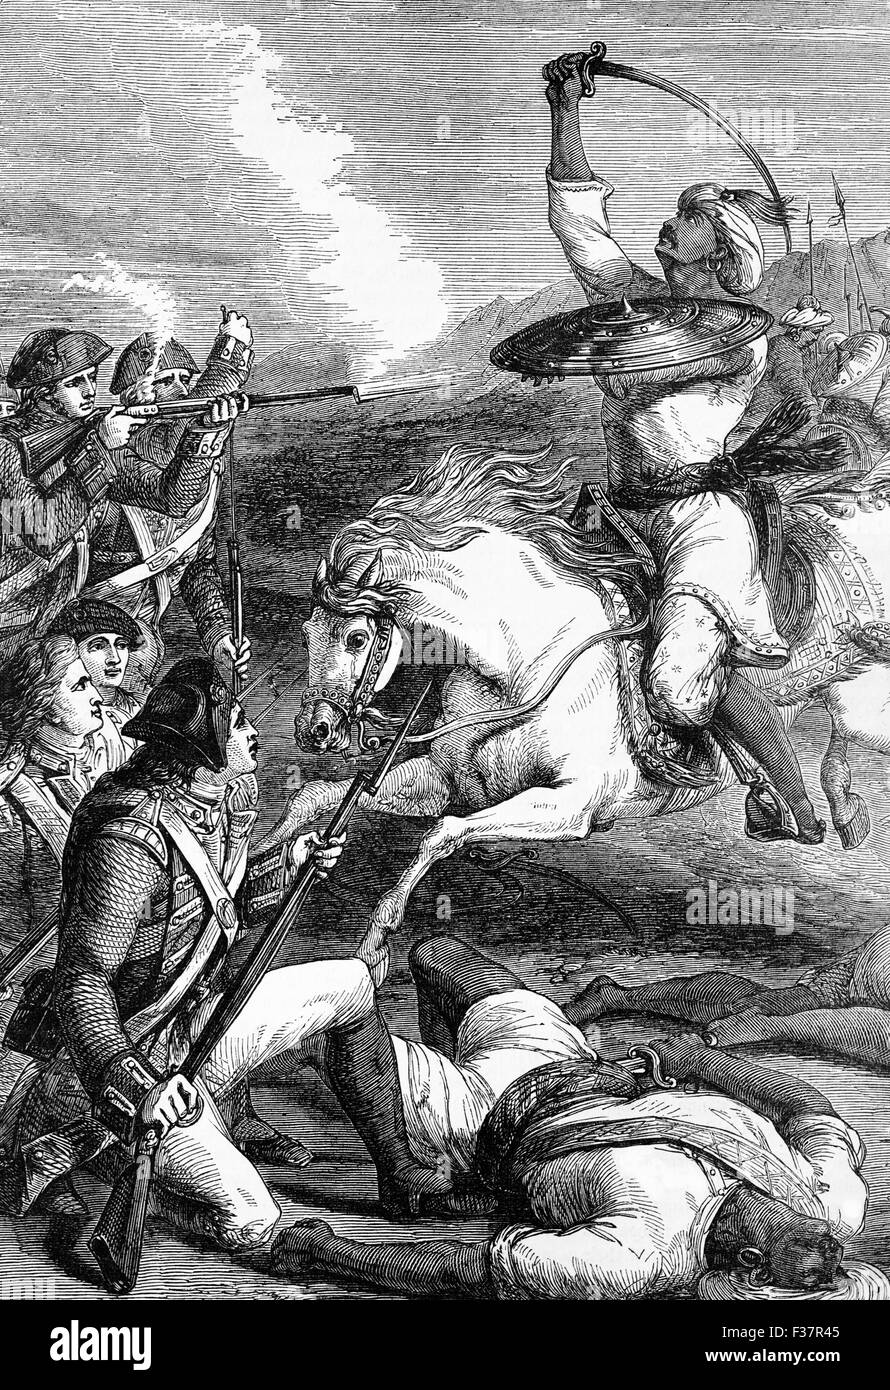 The death of the Rohilla Chief in 1781. The Rohilla are a community of Urdu-speaking Pashtun Afghans also known - Stock Image